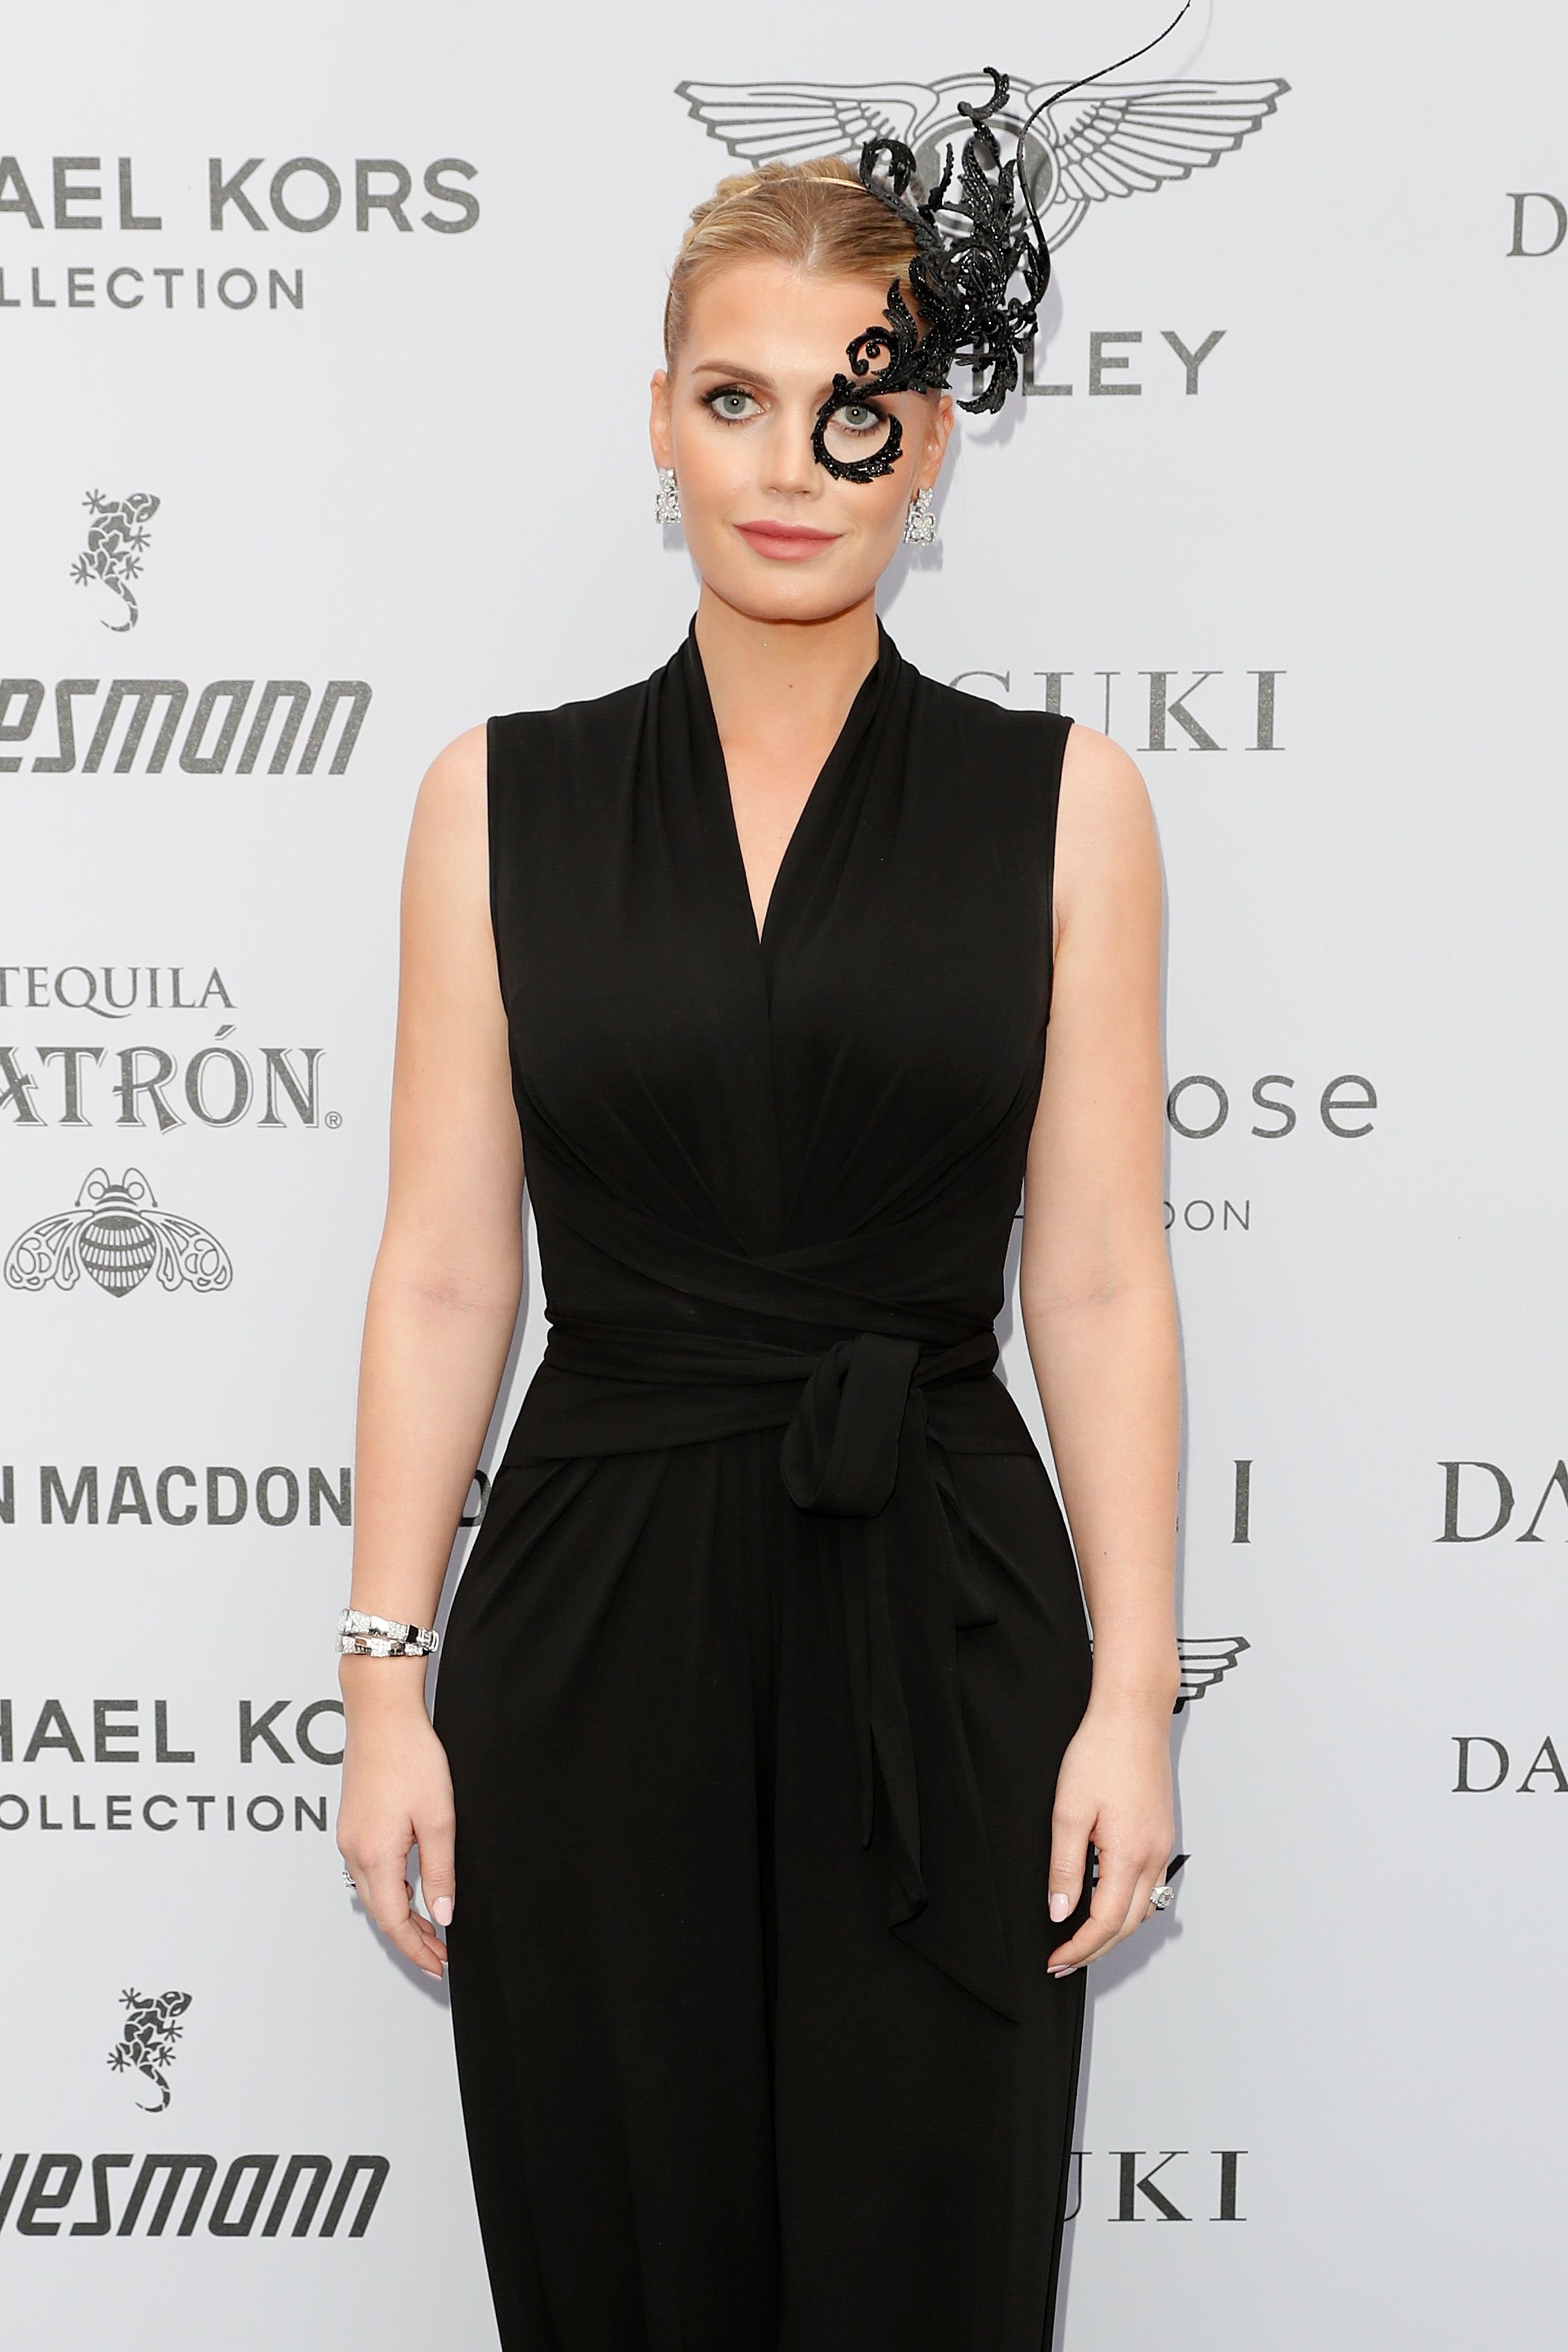 Lady Kitty Spencer at the Cash & Rocket Masquerade Ball & Auction Gala on June 05, 2019.   Getty Images